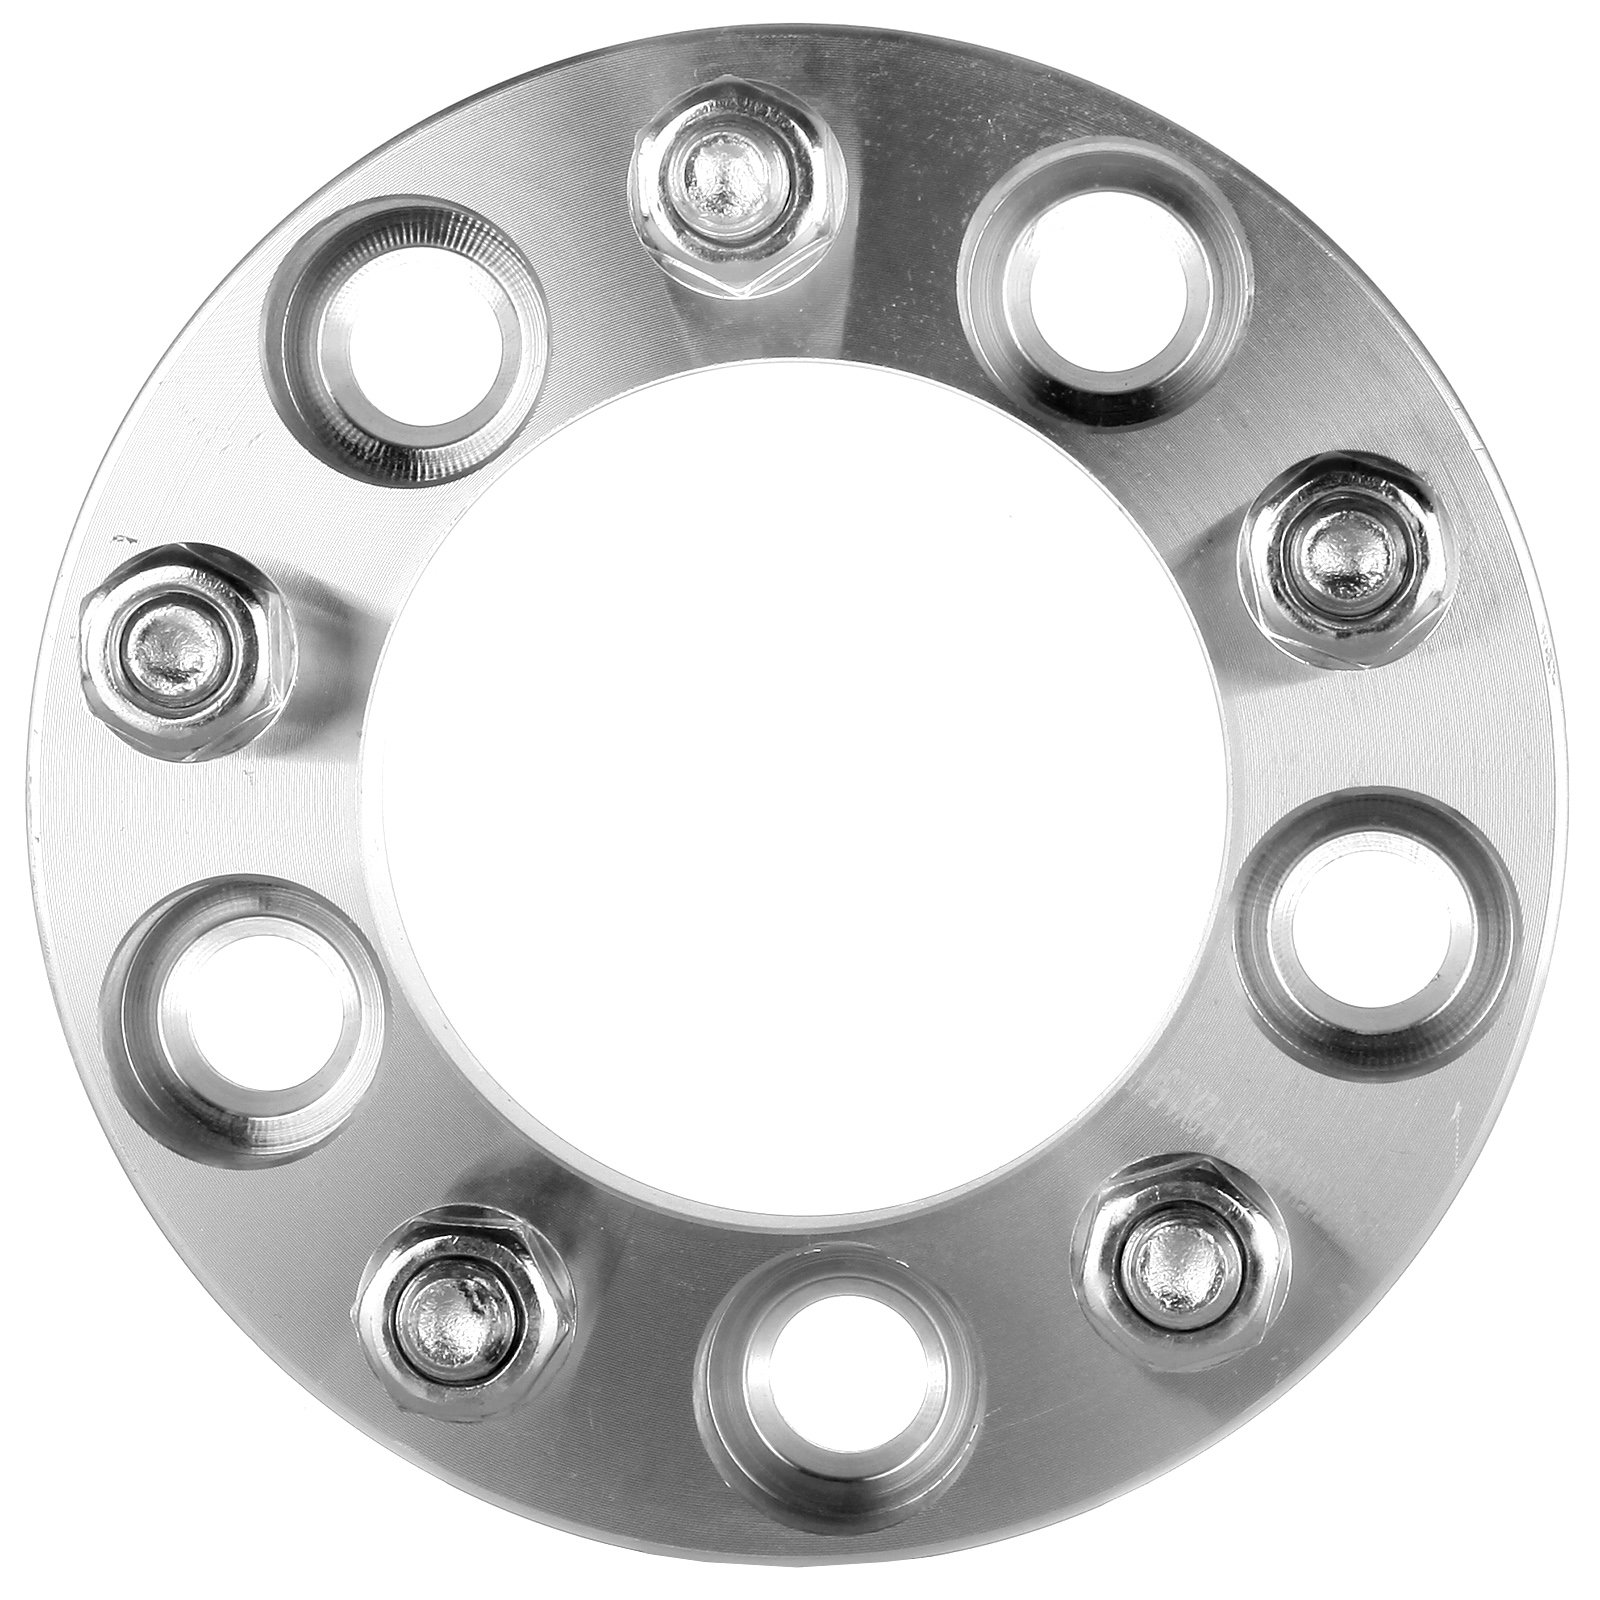 ECCPP Wheel Spacers, 5 Lug Wheel Spacer Adapters 2X 5x4.75-1''(25mm) Thickness - 12 x 1.5 Studs Replacement fit Chevrolet Chevy Corvette Camaro S10 GMC S15 Jimmy Pontiac Firebird GTO